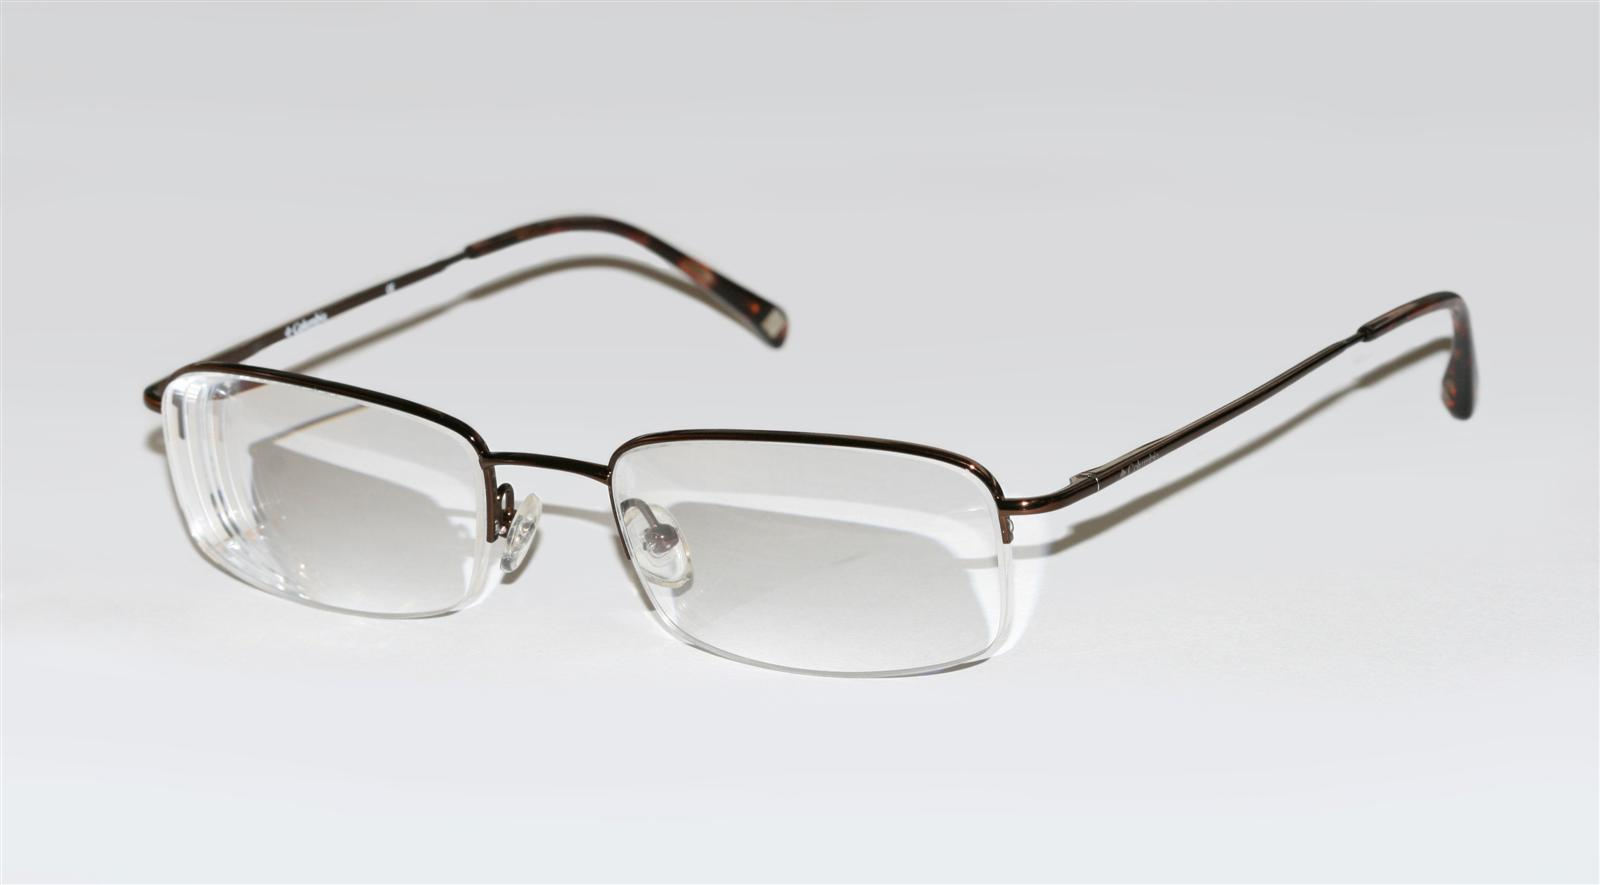 Zenni Optical Work Glasses : Glasses for 85 shekels or less at Zenni! - No Fryers